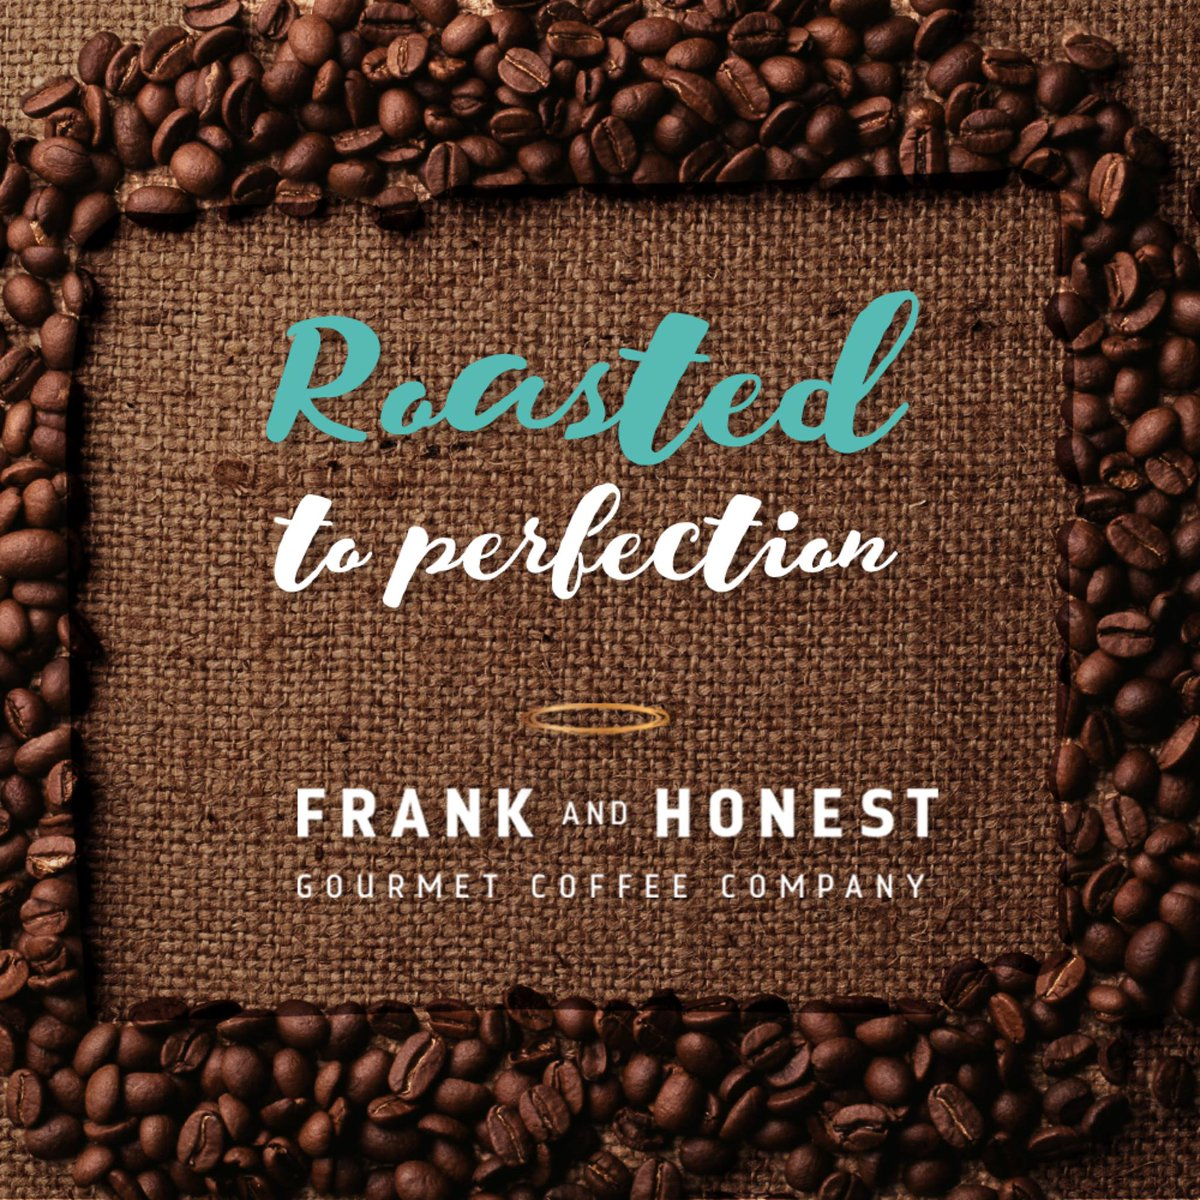 Be More Frank & Honest! Try Our New Coffee... https://t.co/d18aEbdJh8